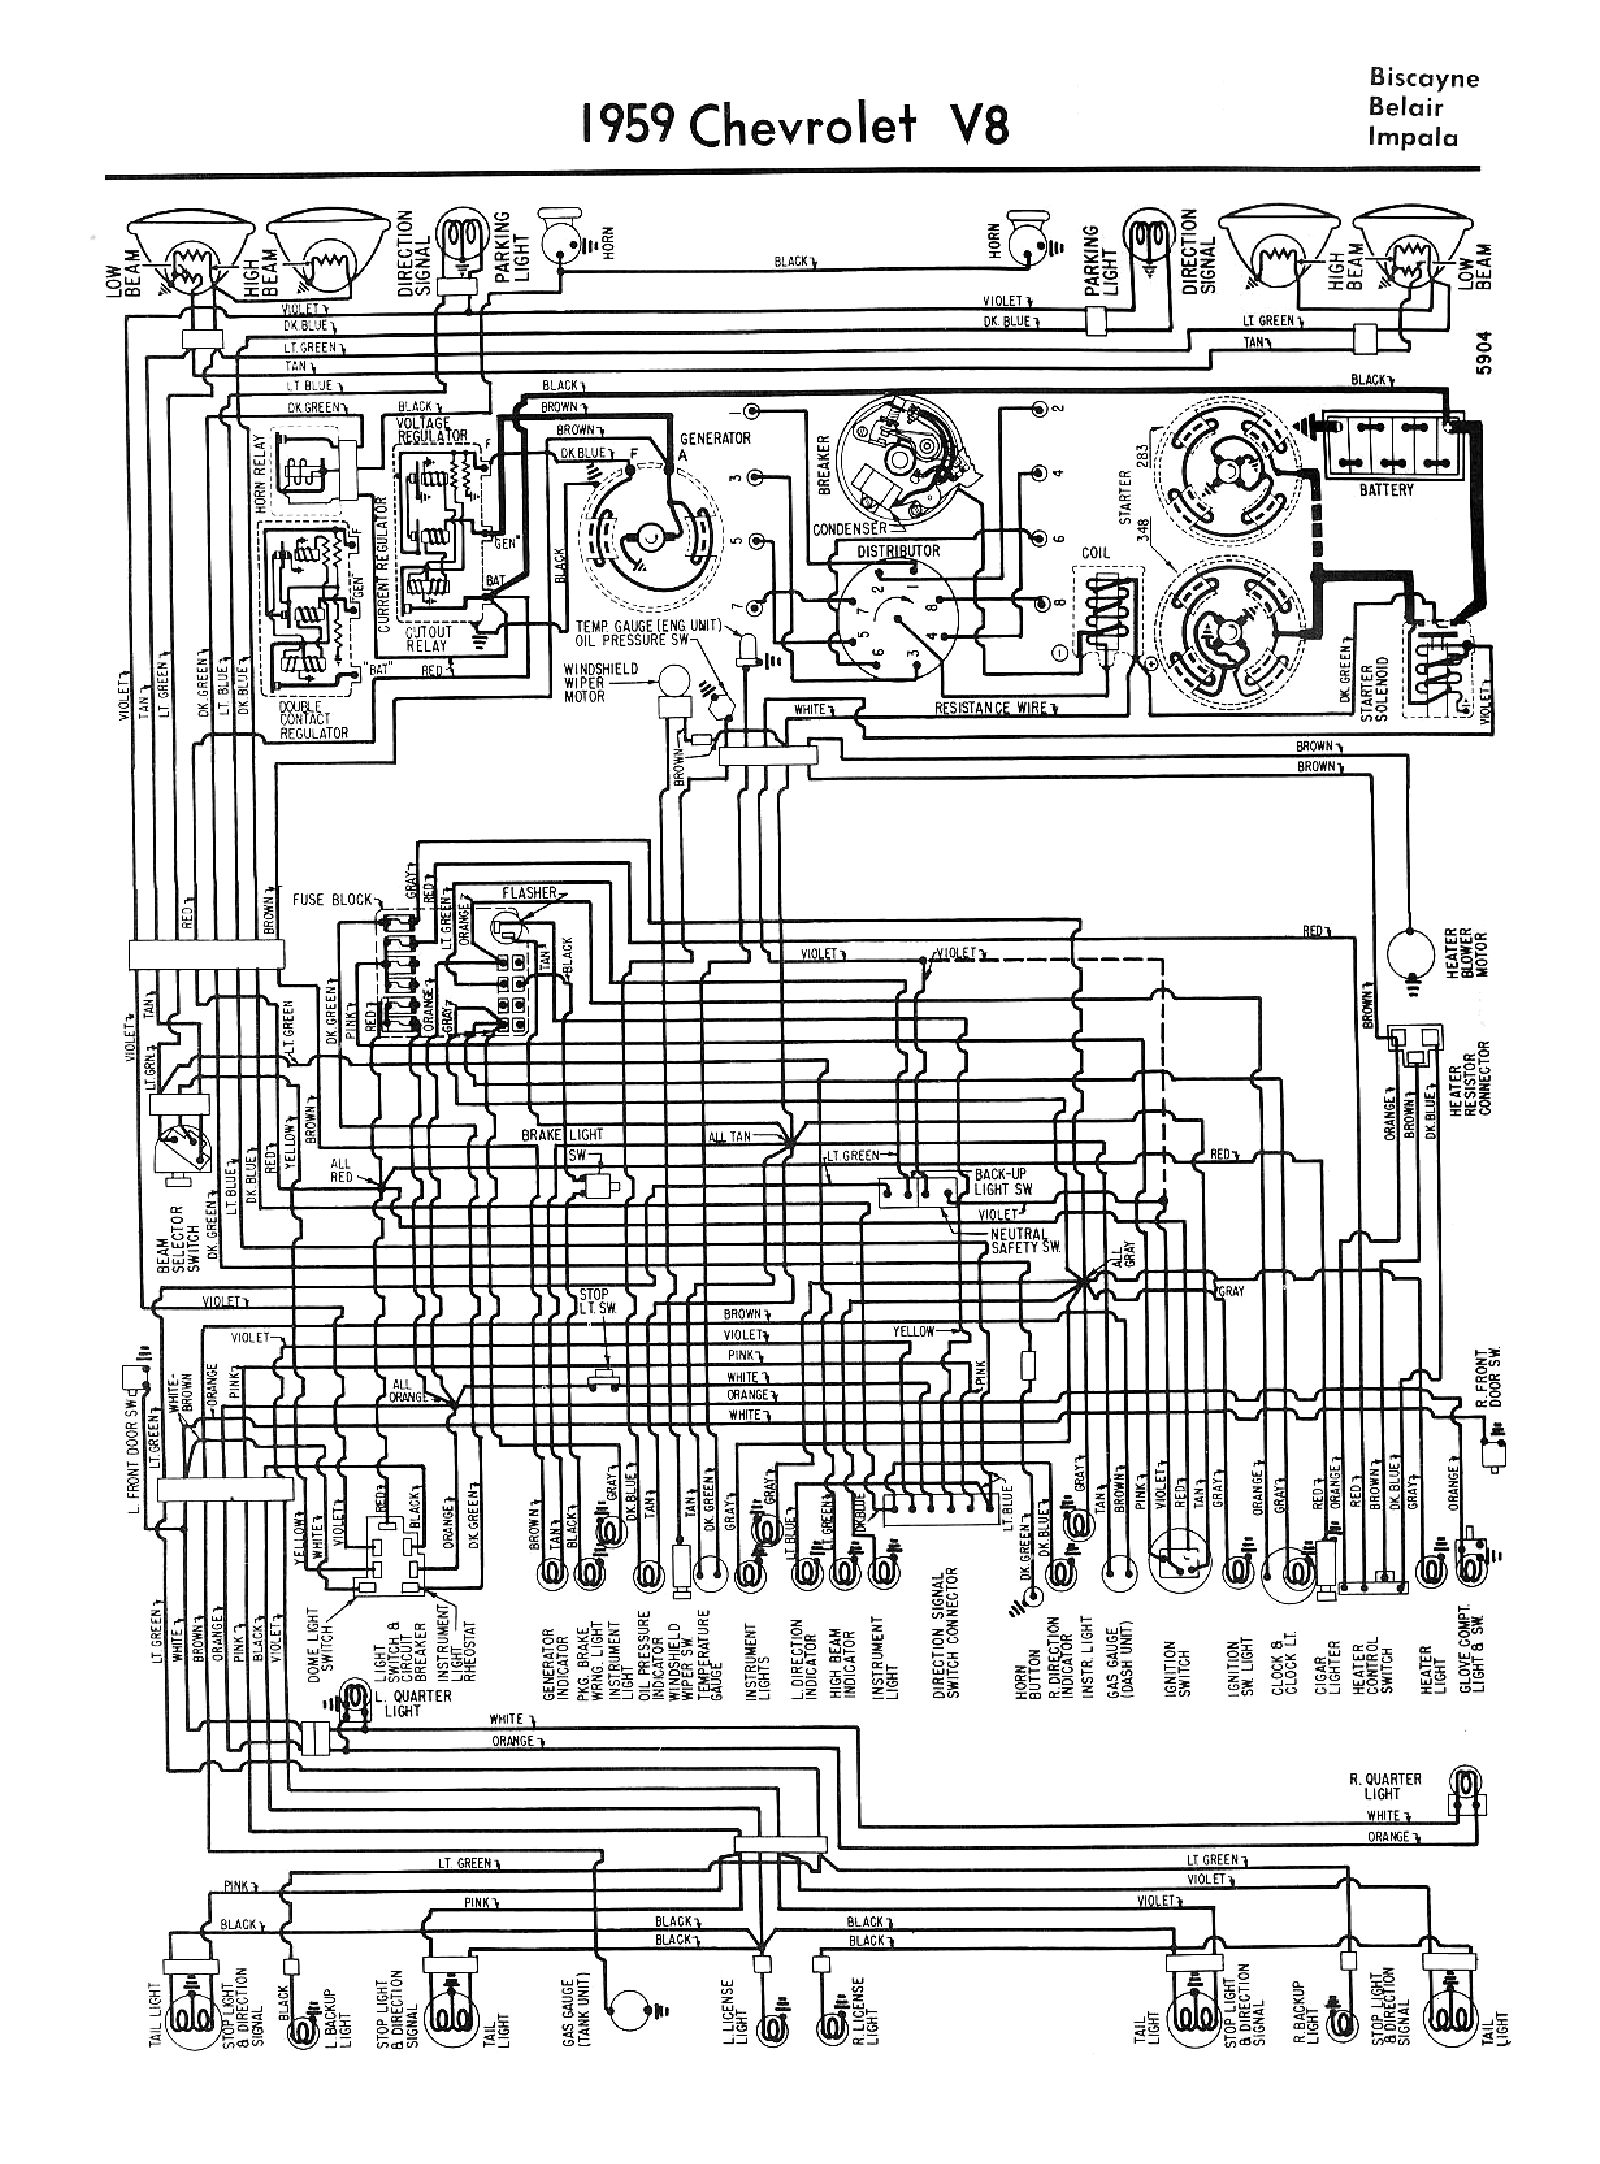 1959 Lincoln Welder Engine Wiring Diagram  Lincoln  Auto